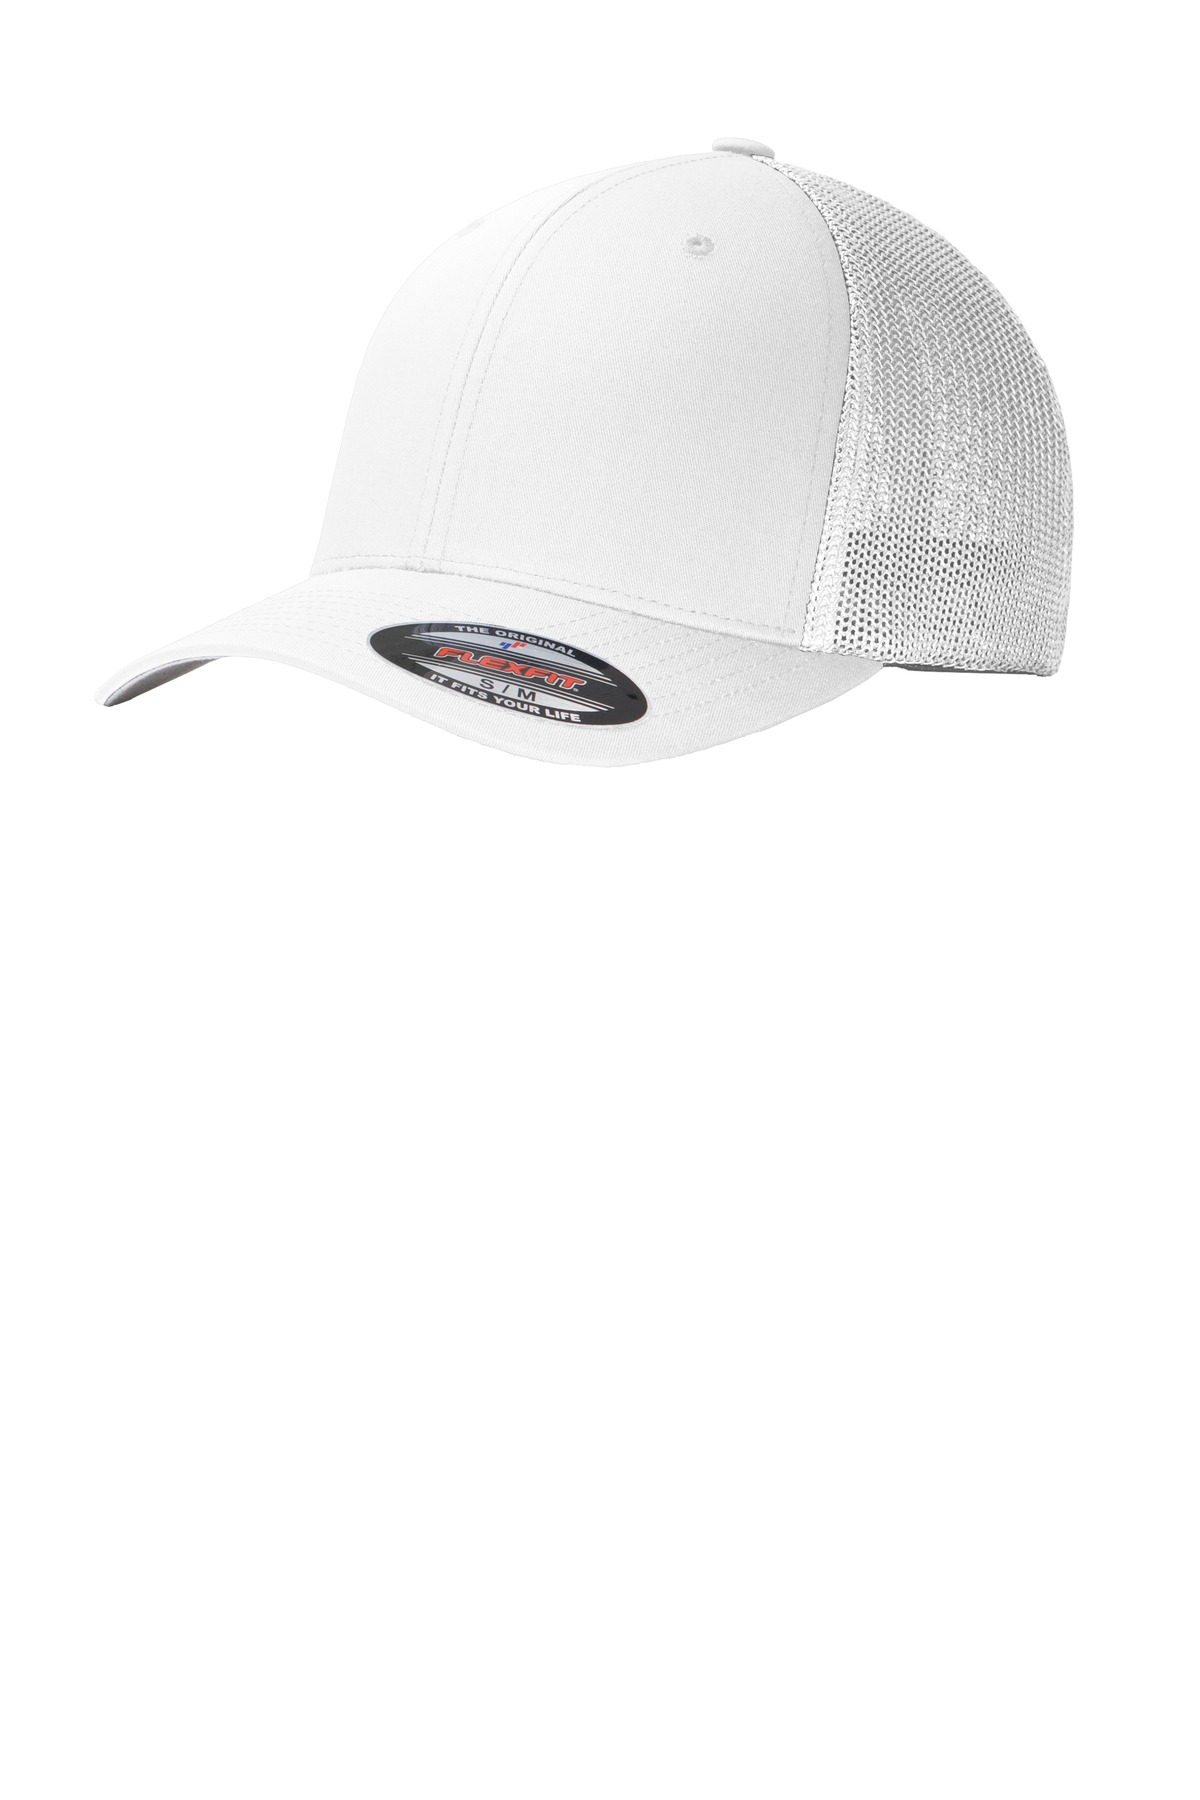 Port Authority ®  Flexfit ®  Mesh Back Cap. C812 - White/ White